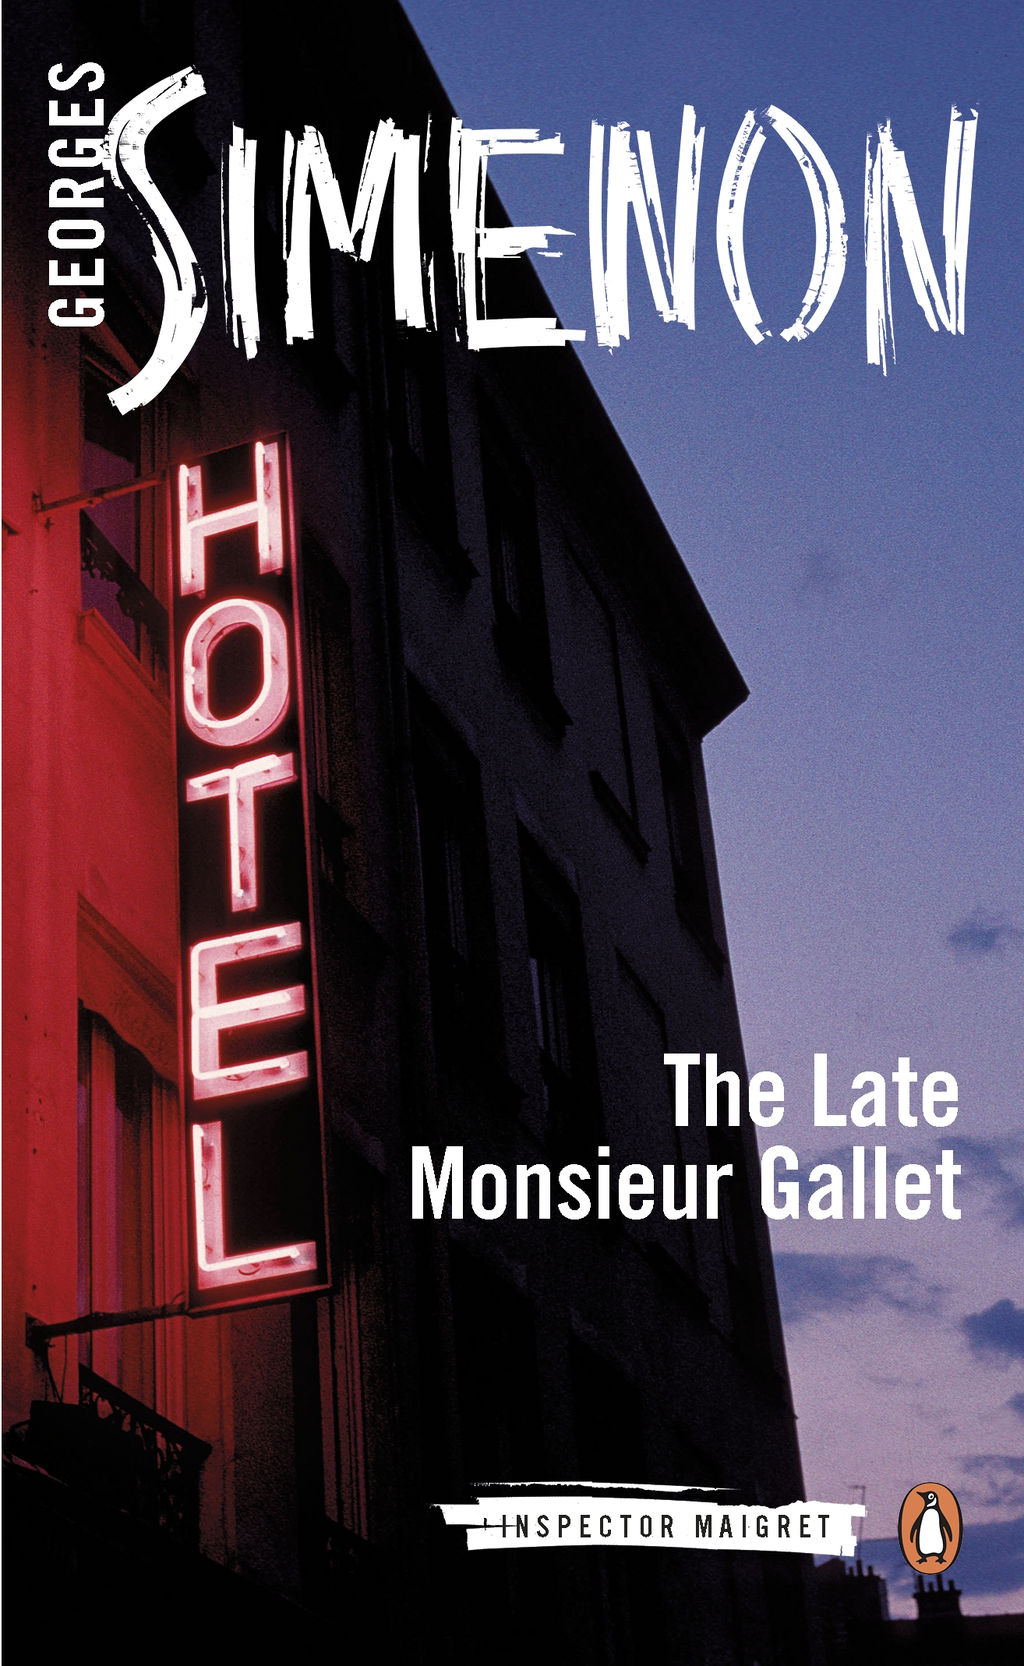 The Late Monsieur Gallet Inspector Maigret #2